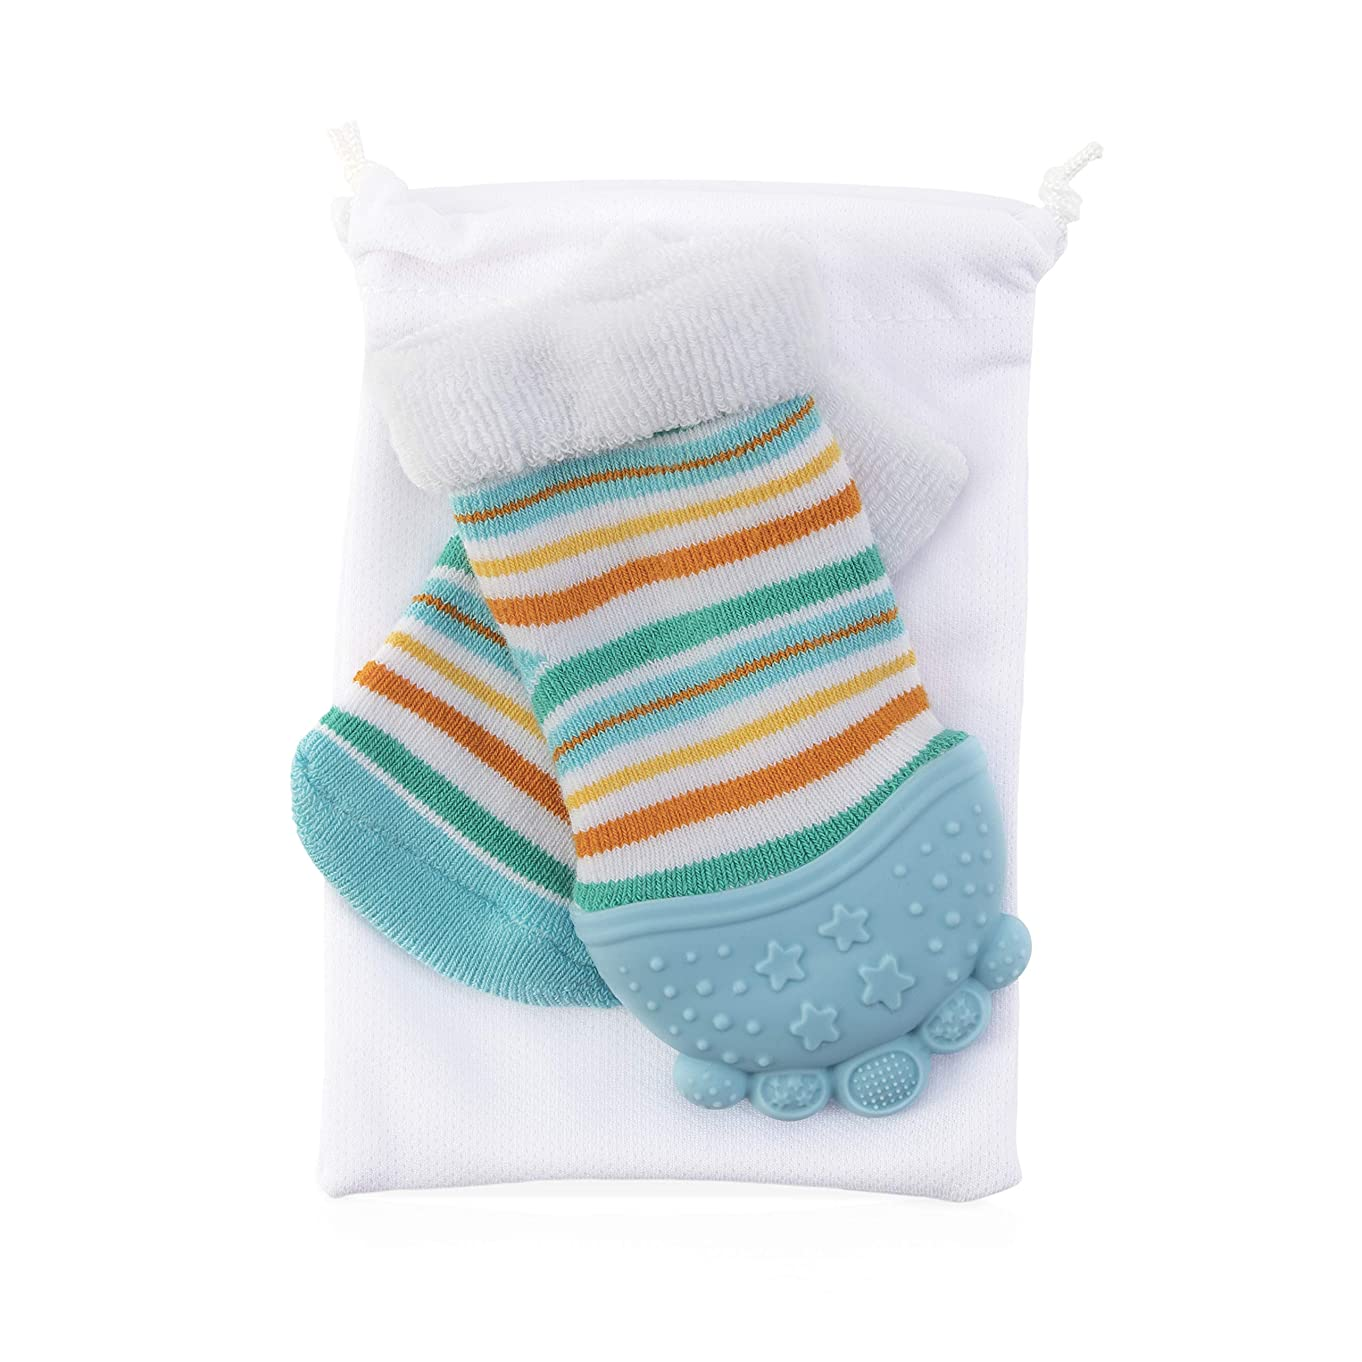 Nuby Soothing Teether Sock, Baby Blue Stripes